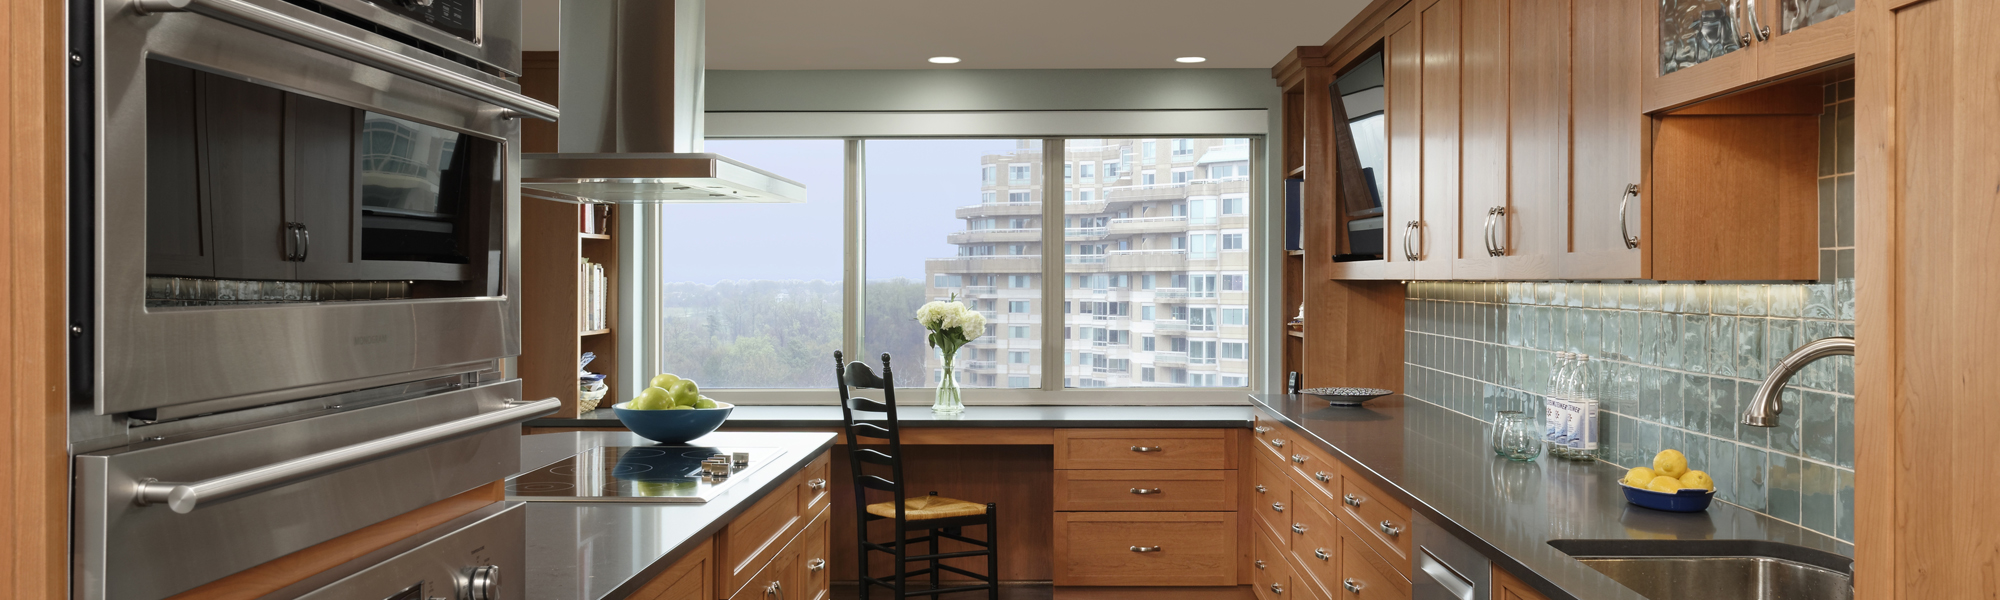 HEADER_NEWB-Chevy-Chase-MD-Condo-Renovation